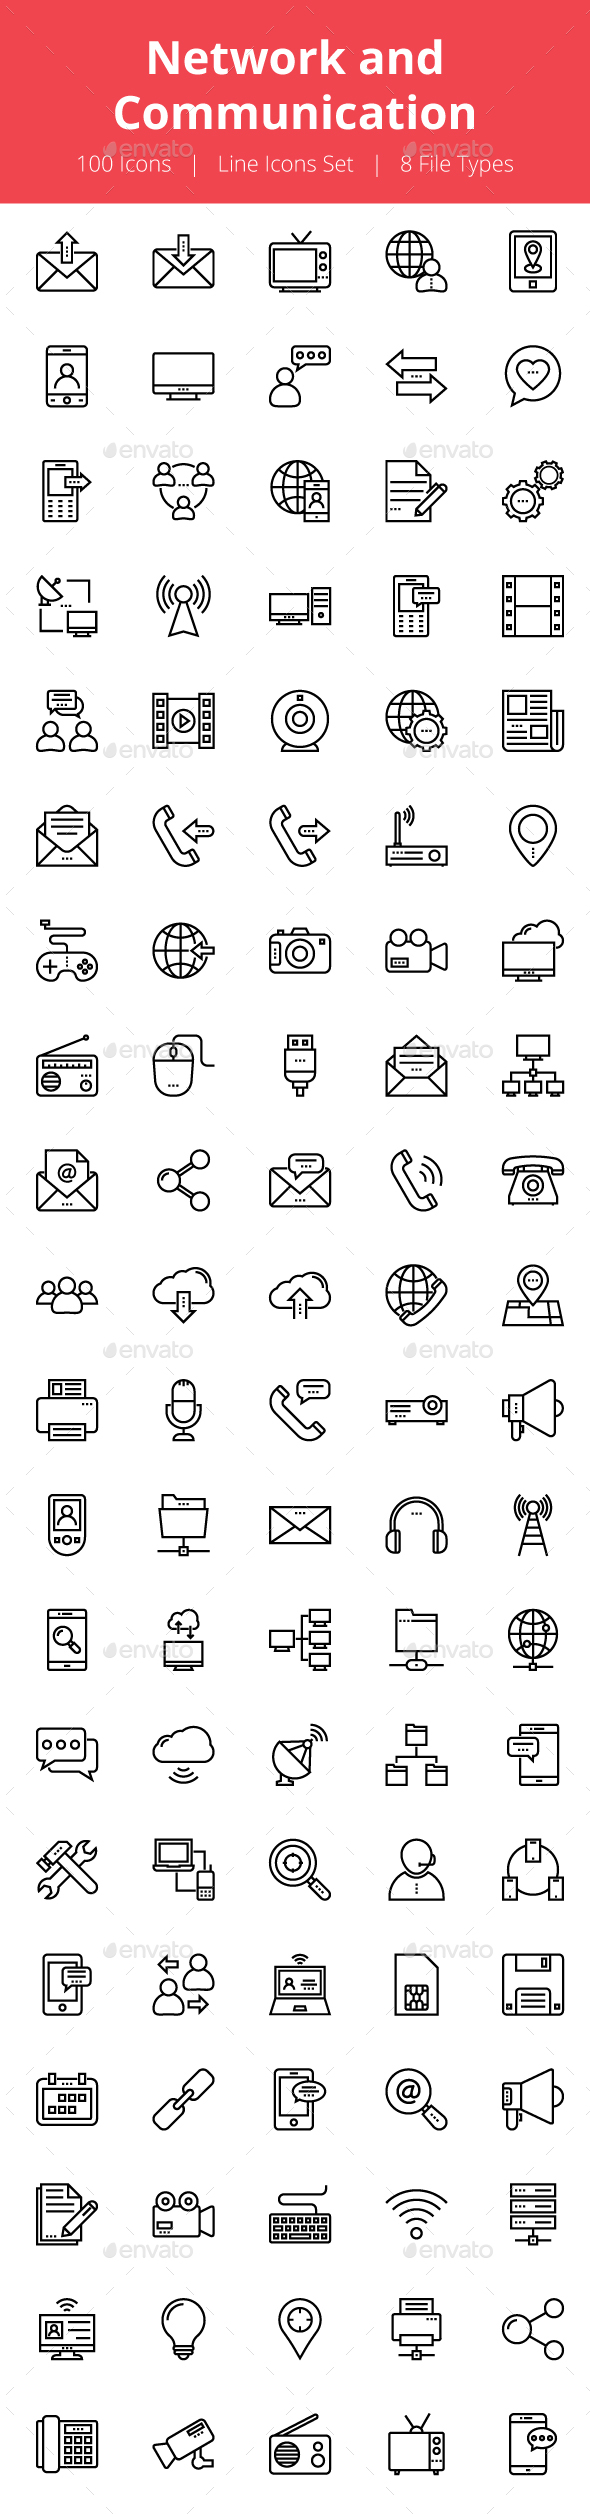 100 Network and Communication Icons - Icons